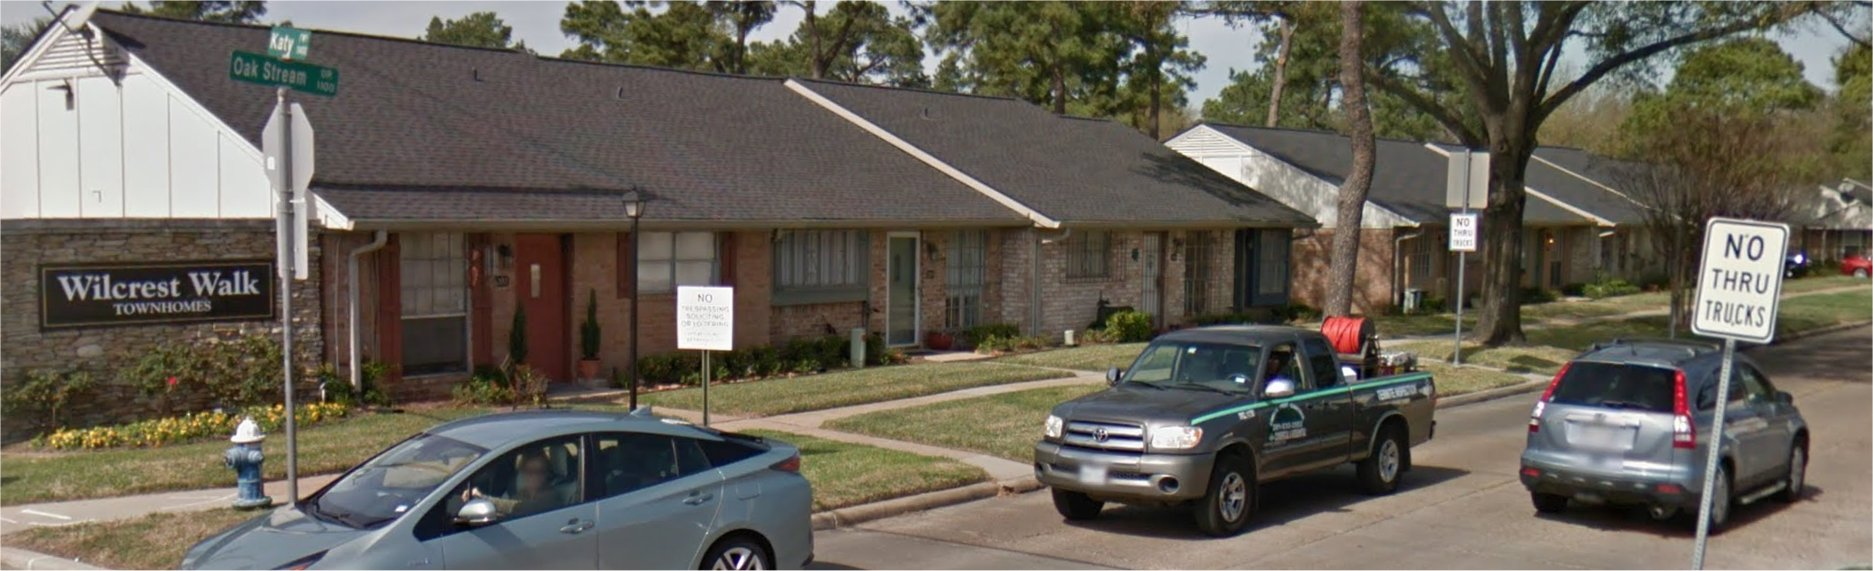 Wilcrest-Walk-Townhomes-HOA-Security-Camera-Installation-Houston